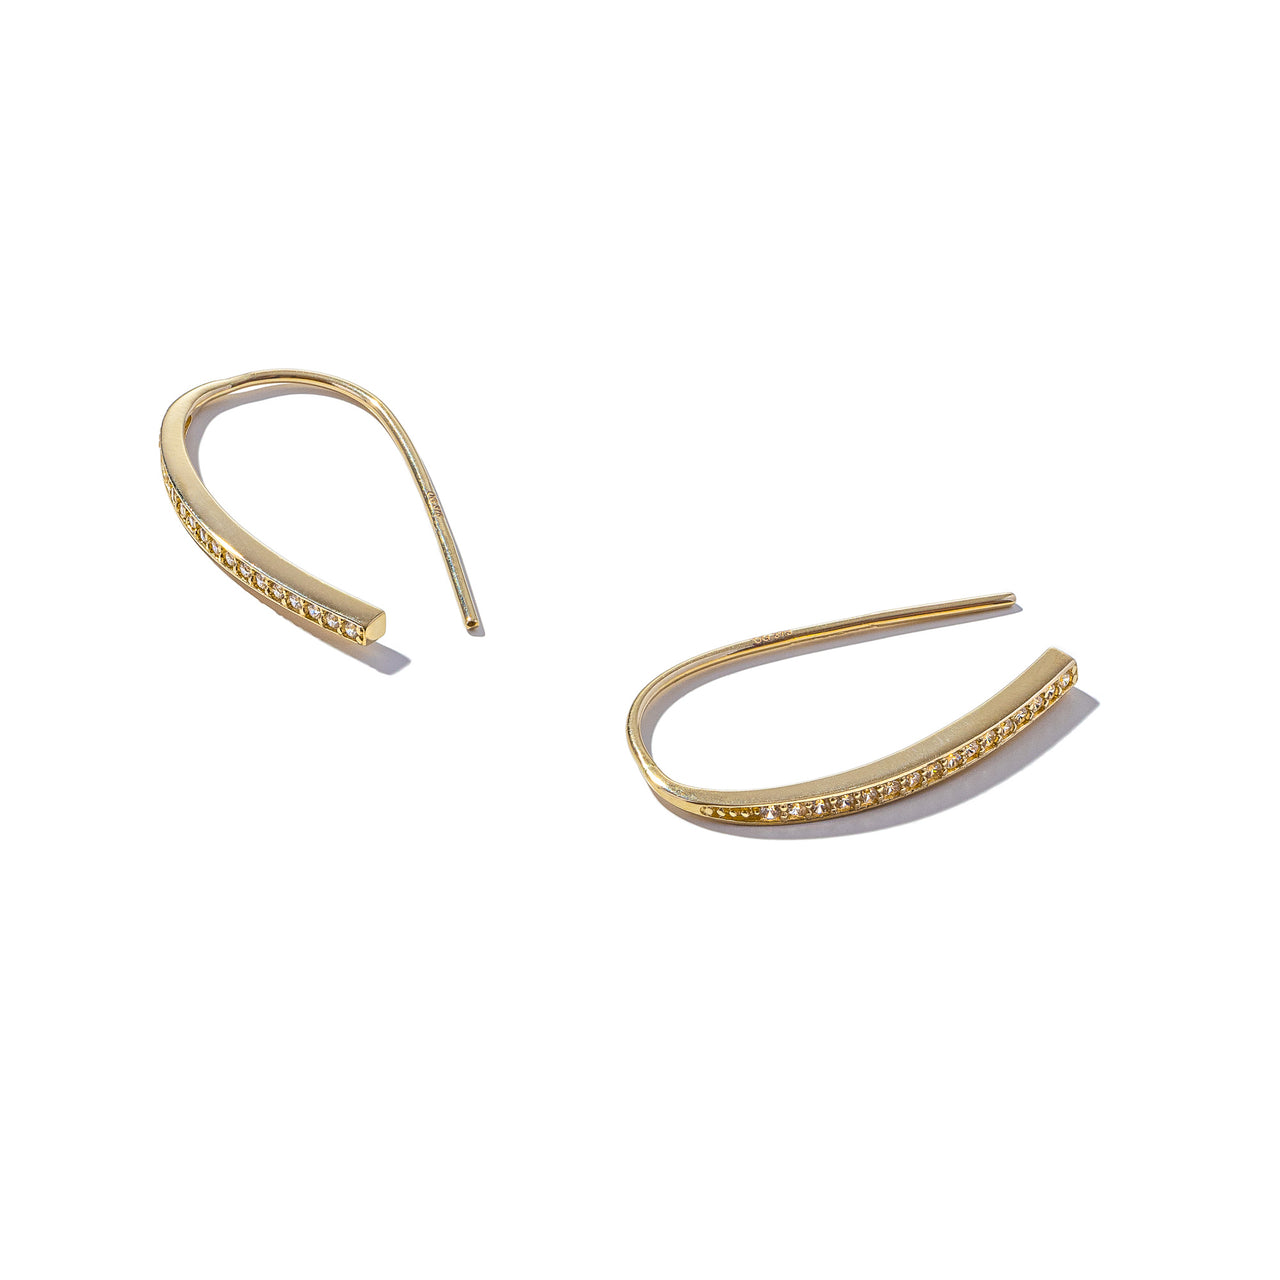 Solid 9ct Gold Get Hooked Earrings